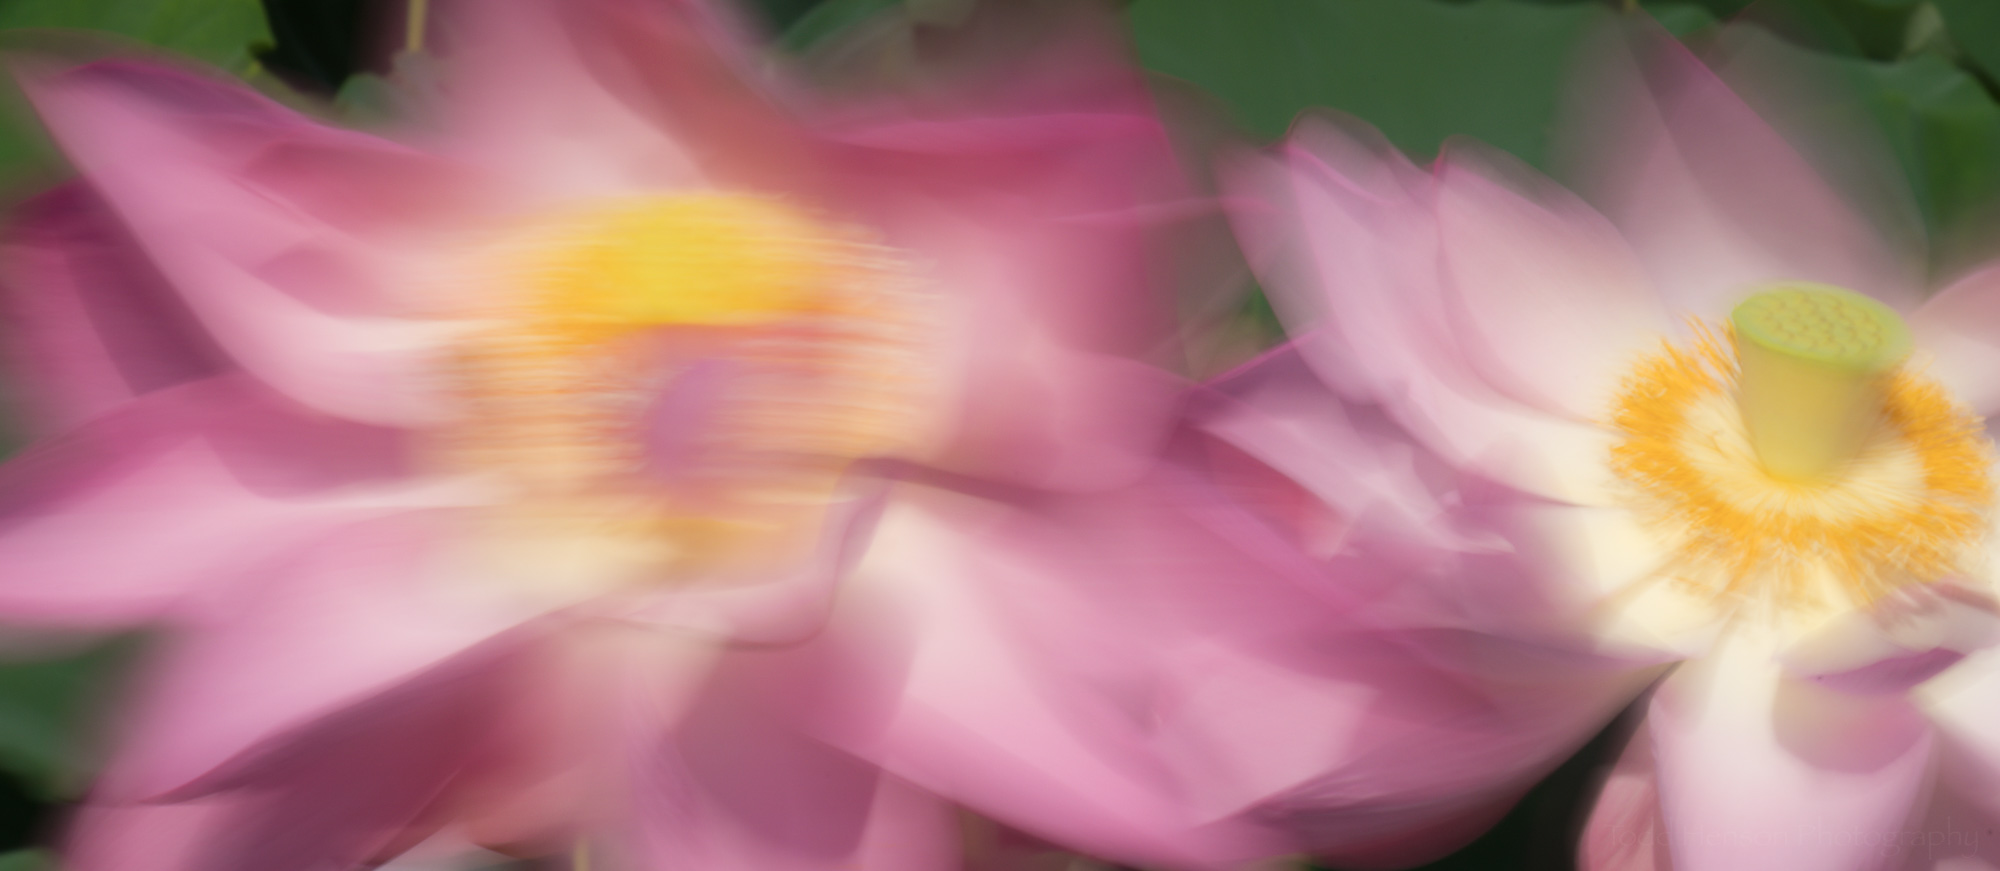 A pair of lotus flowers dancing in the wind, using a slow shutter speed to capture the motion blur.